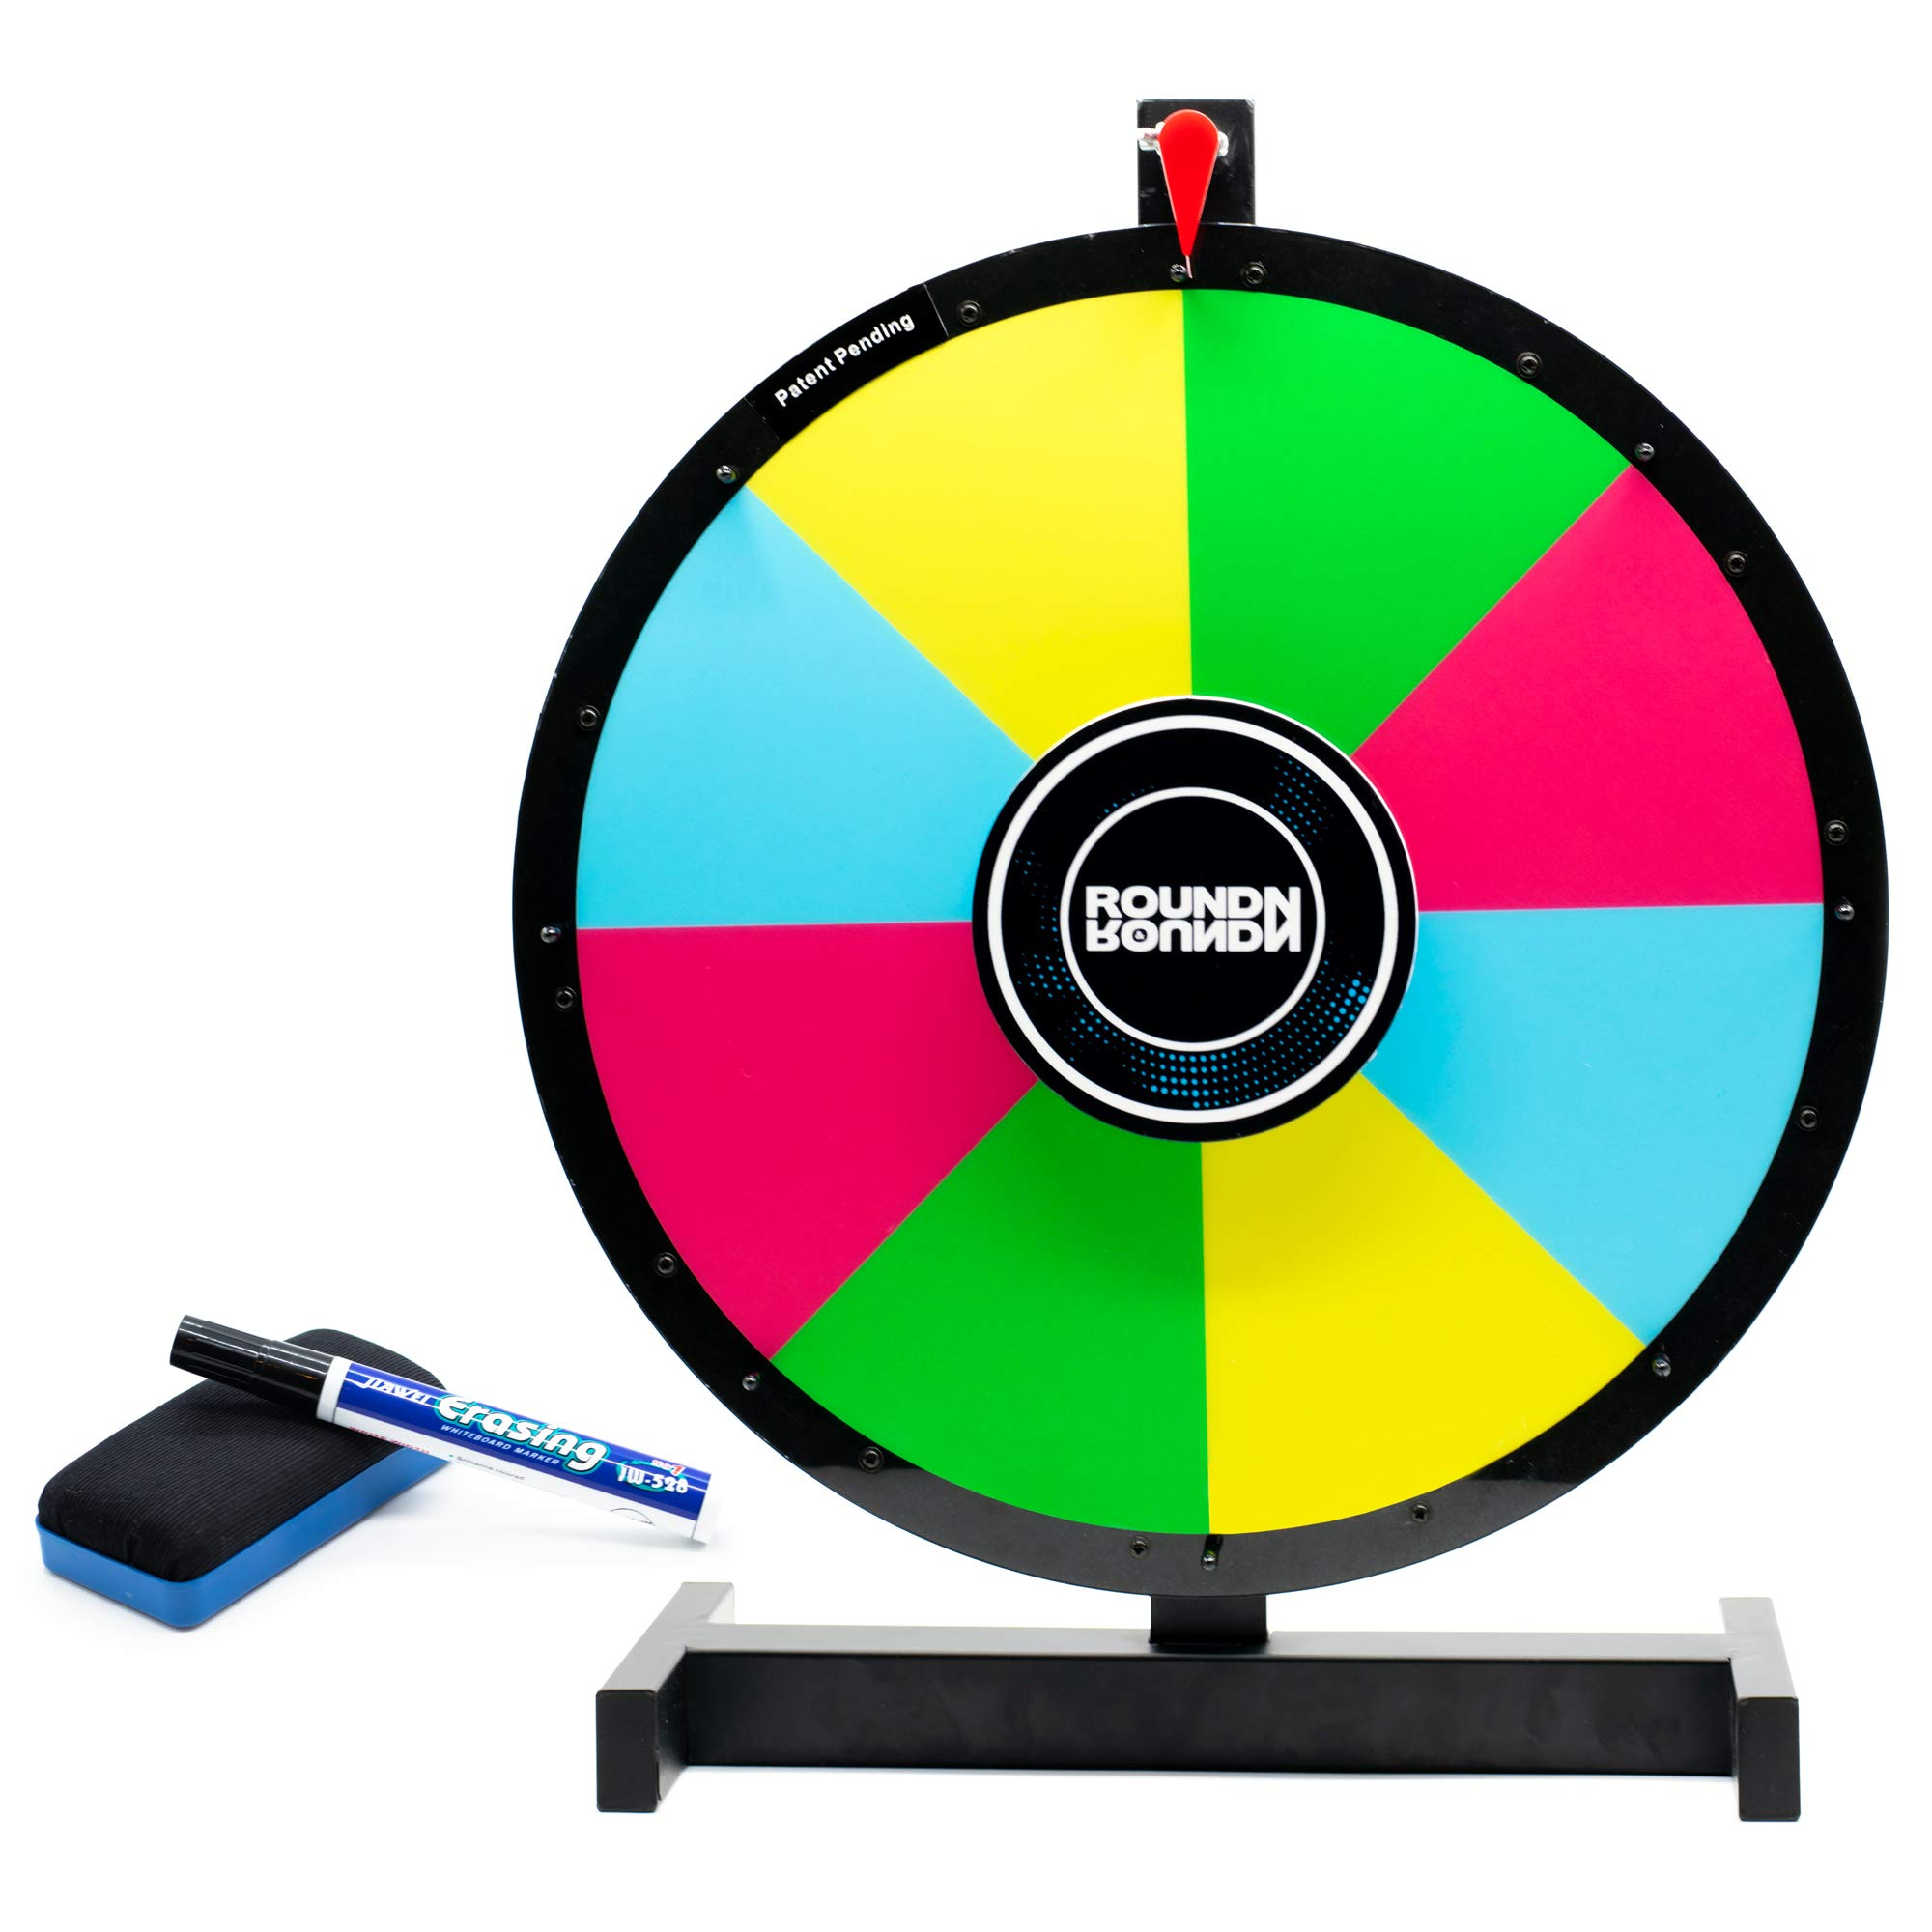 Round N Round Prize Wheel Spinner w/ Heavy Duty Metal Tabletop Stand | Reversible 2-Sided 14 + 8 Slot | Spinning Color Dry Erase Board | Spin to Win the Fortune of Roulette Casino Tradeshow Party Game